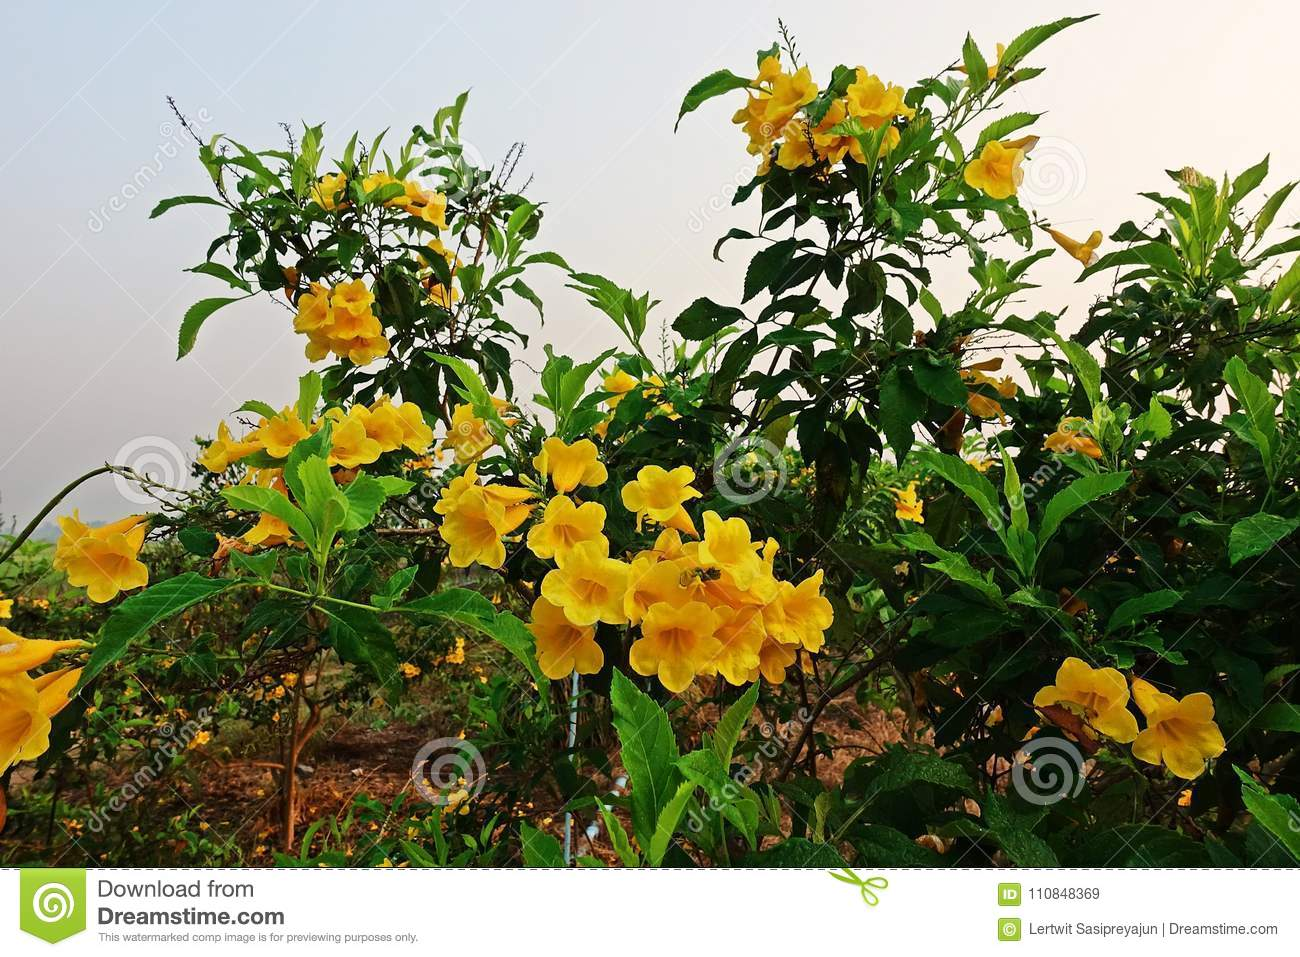 Tecoma stans a species of flowering shrub in the trumpet vine family tecoma stans a species of flowering shrub in the trumpet vine family bignoniaceae common names are yellow trumpet bush yellow bells yellow elder mightylinksfo